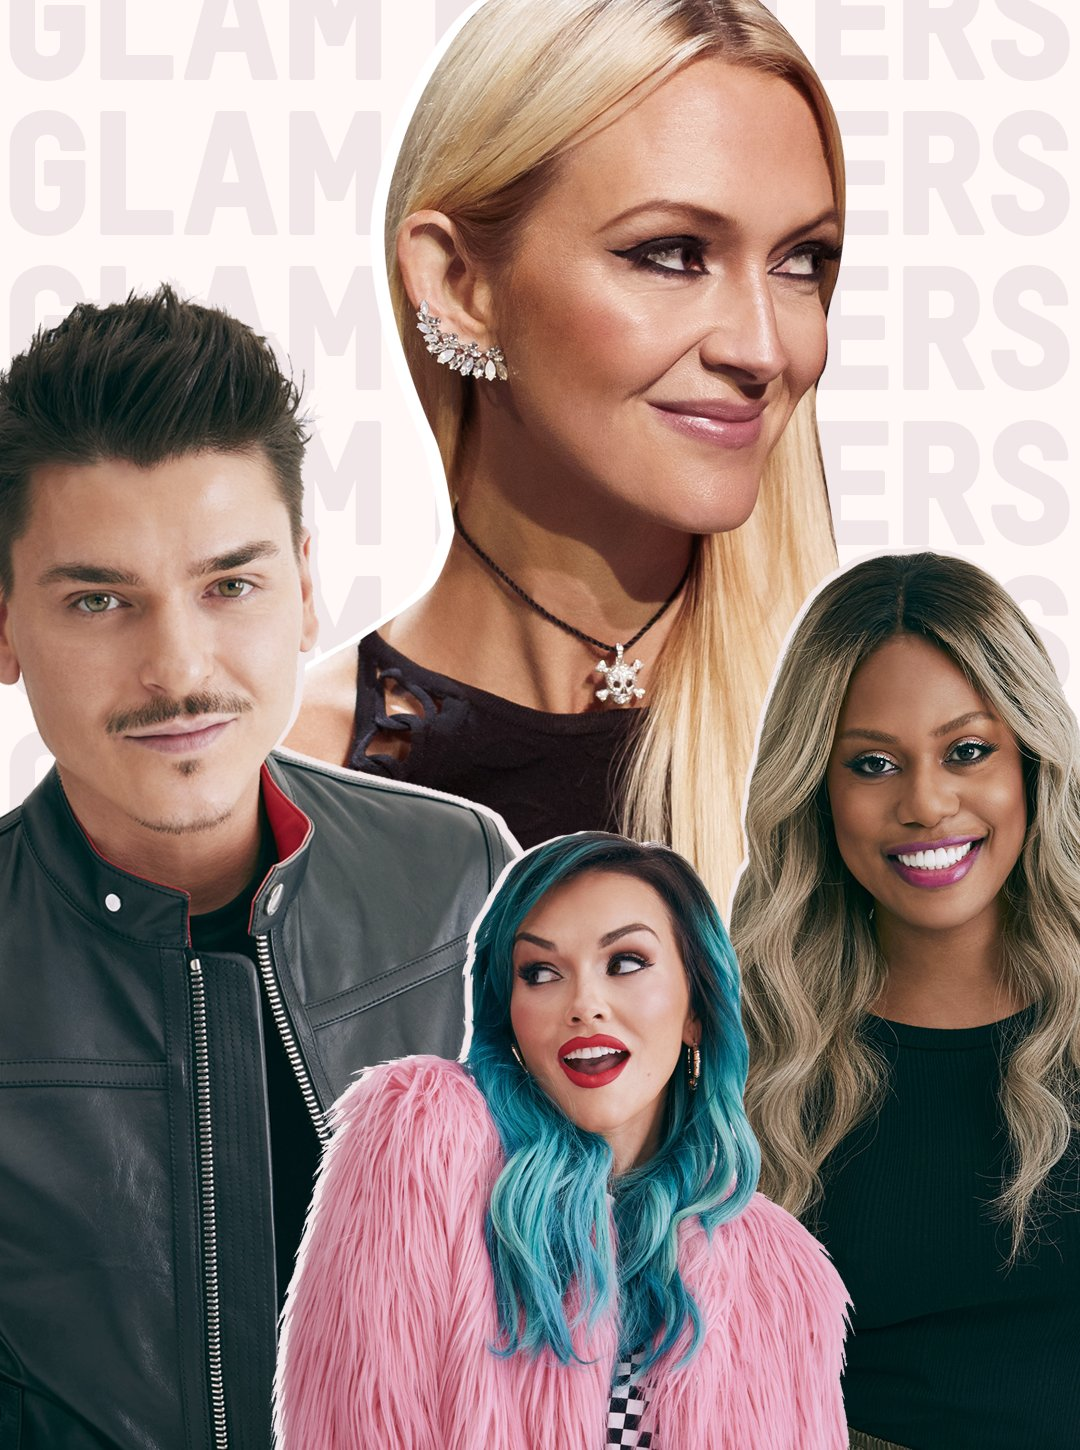 Which Glam Masters judge are you? Take the quiz: https://t.co/A7WmXBBp9g https://t.co/e1rUCquKvw